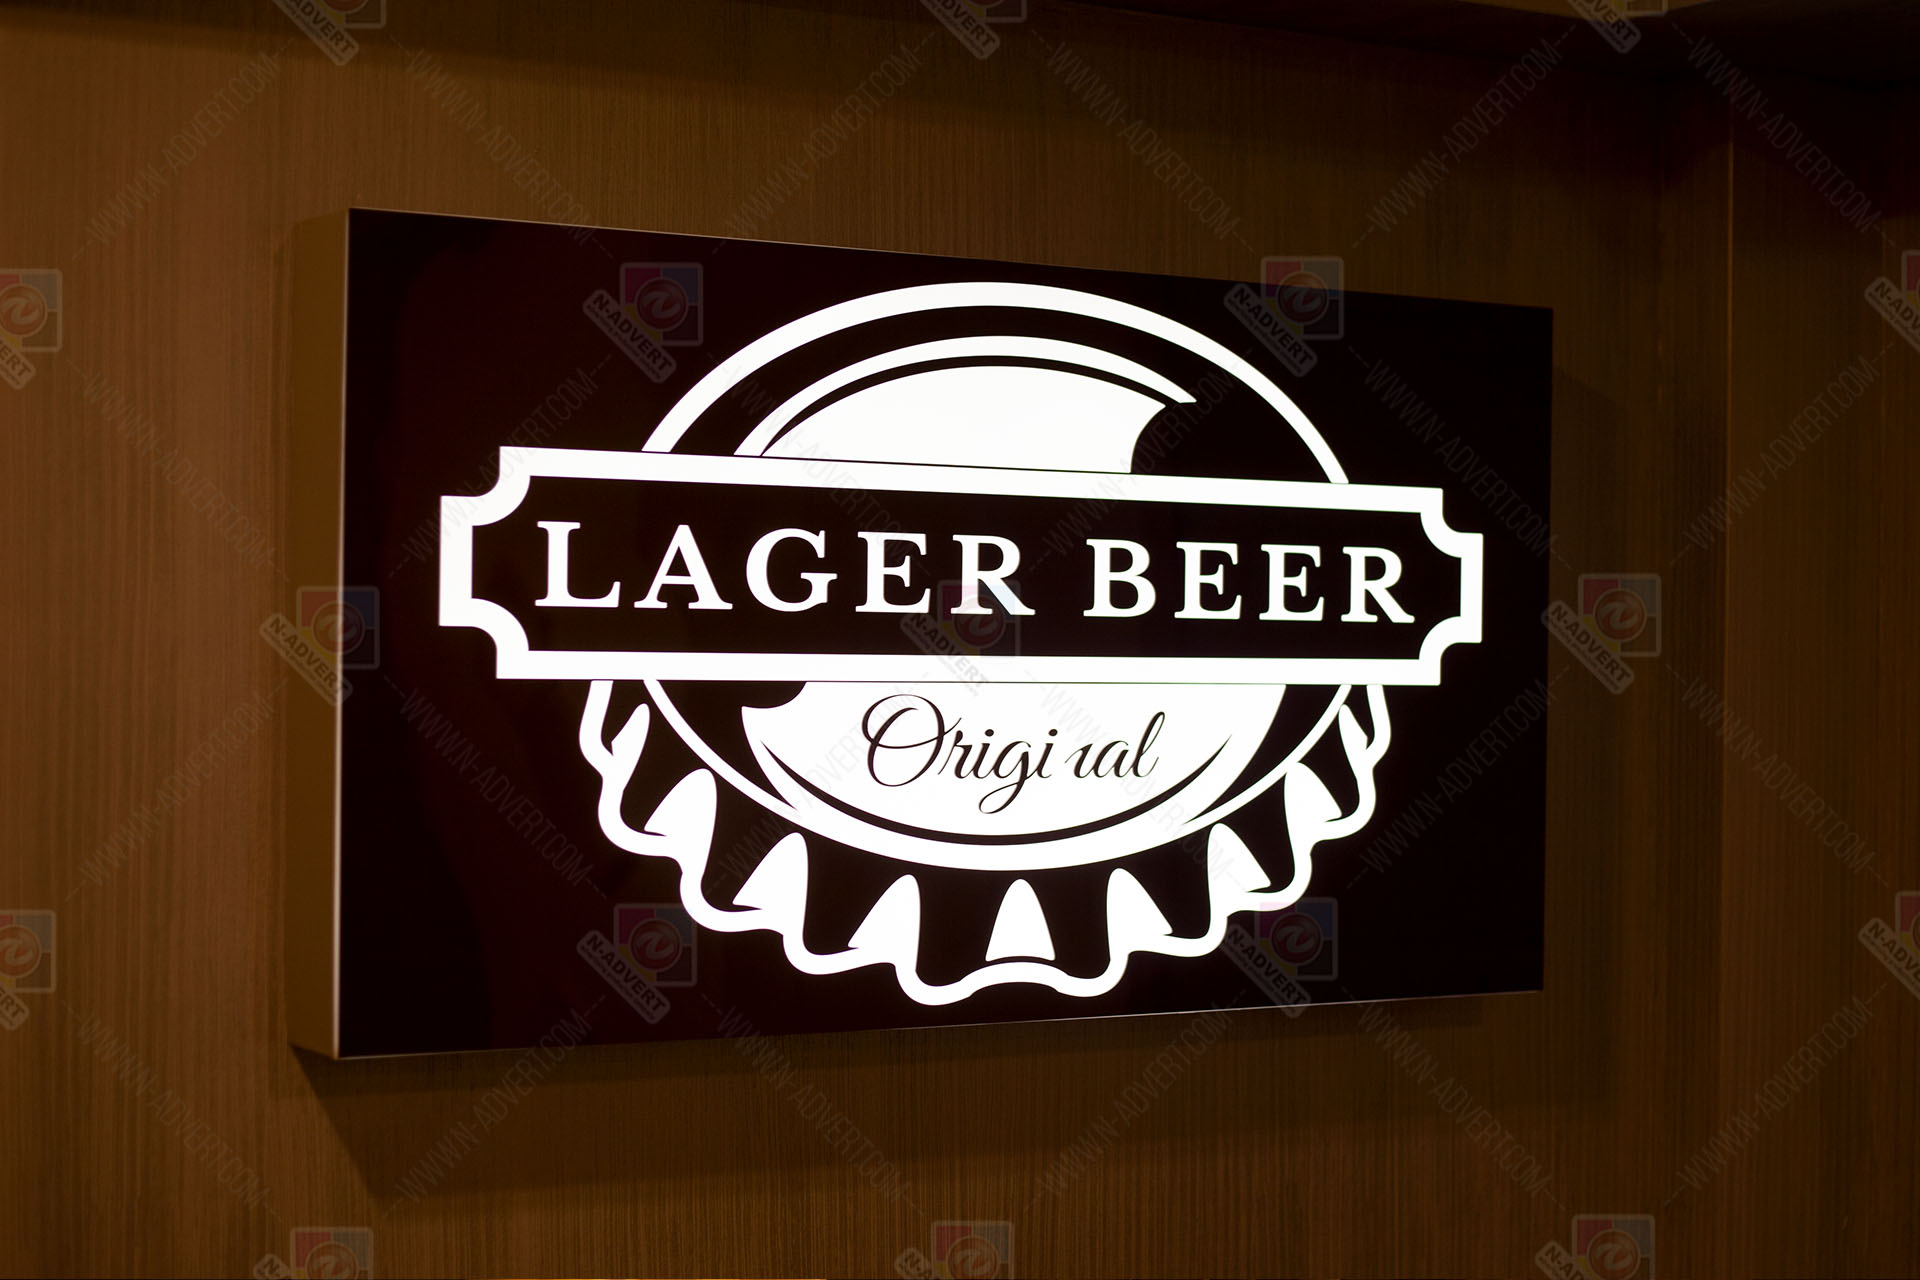 Lager beer 1920x1280